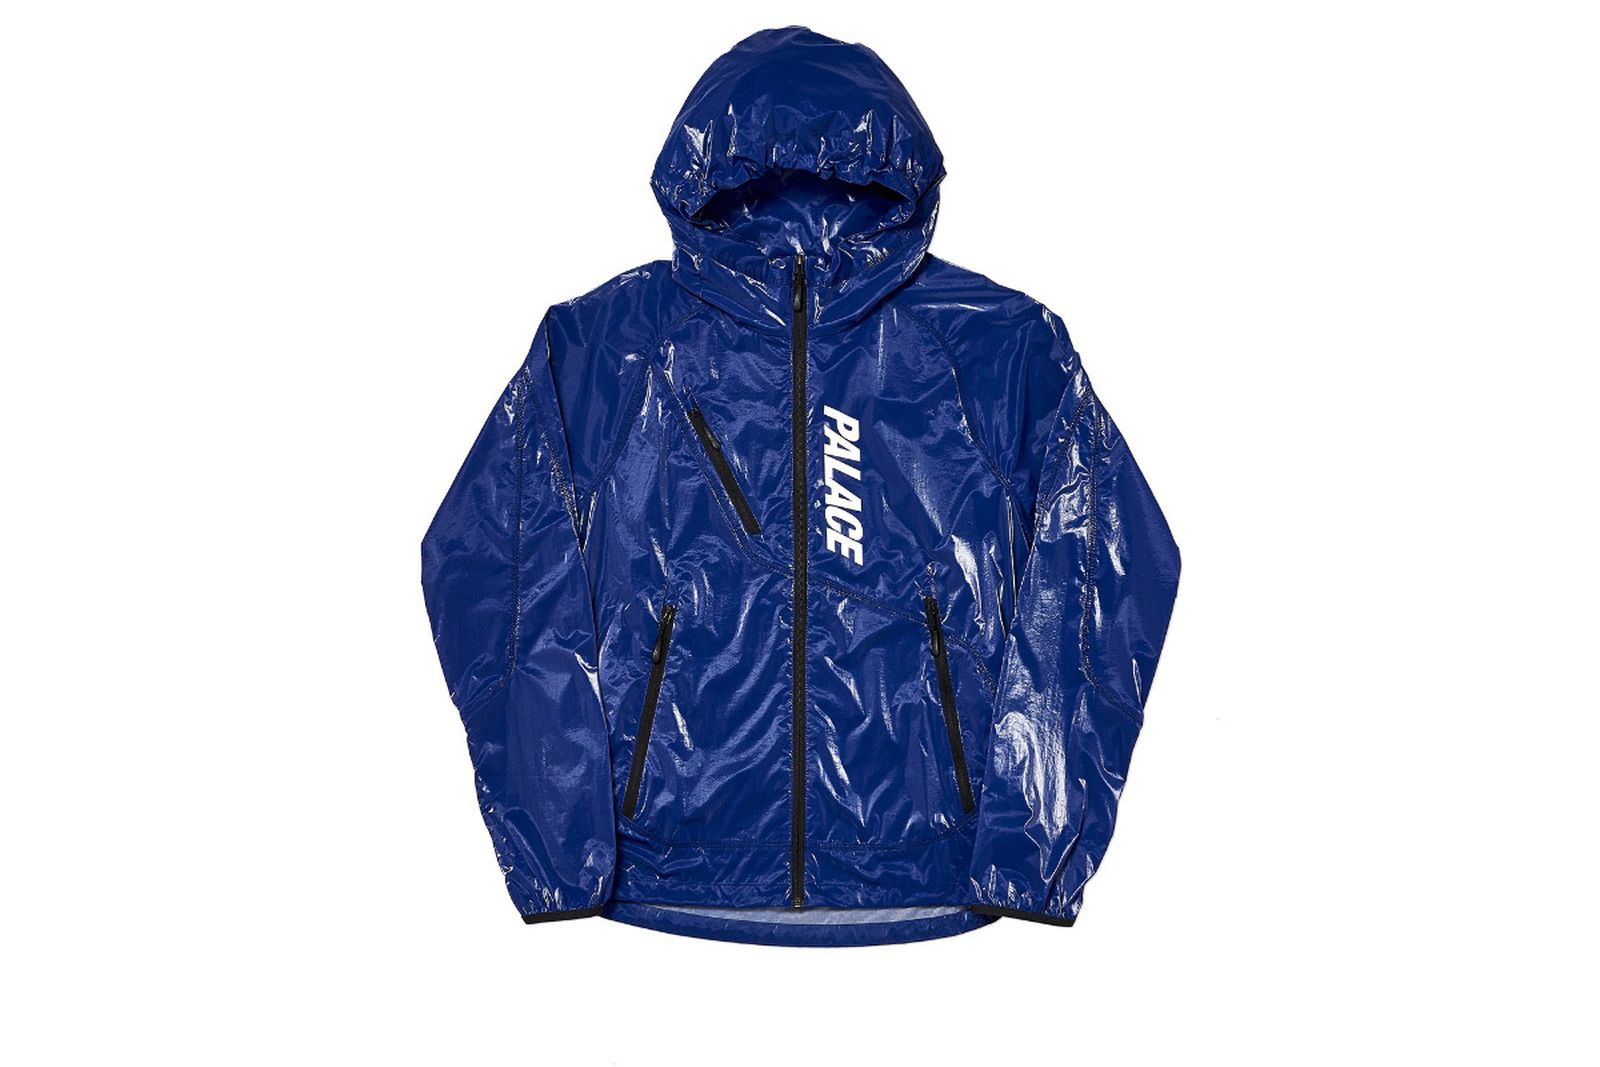 Palace 2019 Autumn Jacket G Loss Jacket blue front fw19